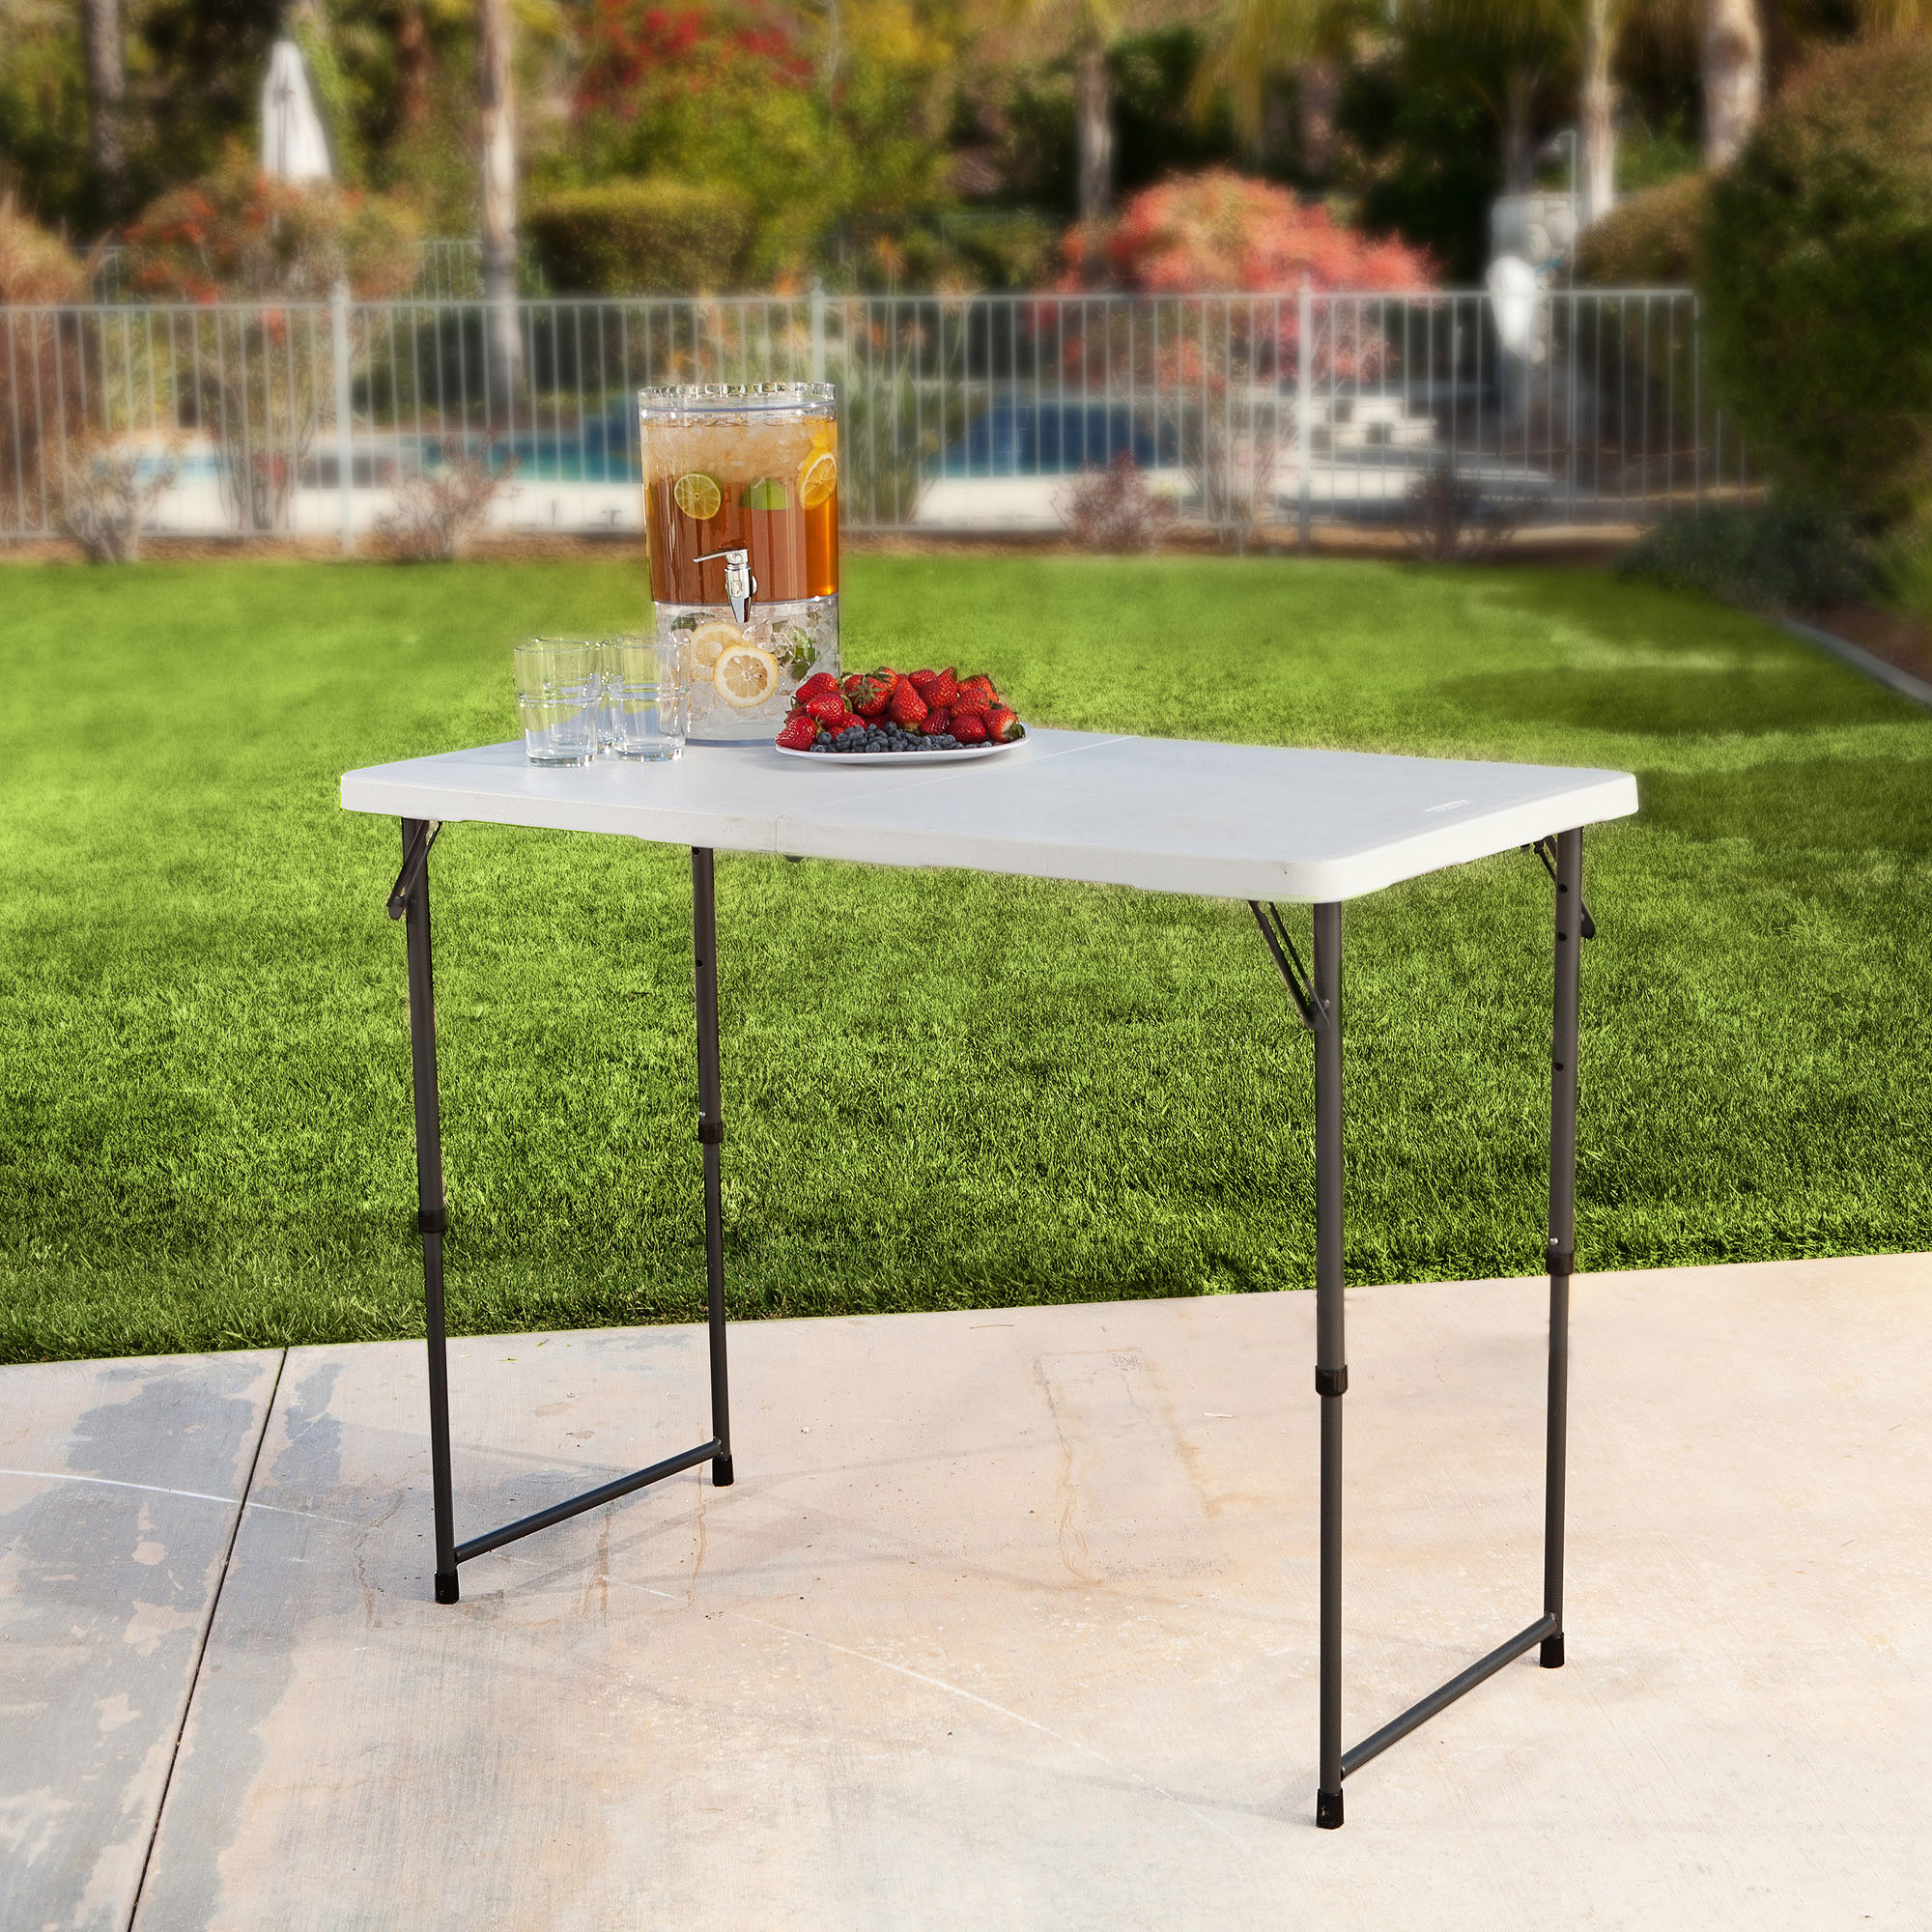 Lifetime 4' Fold-In-Half Adjustable Table, White Granite